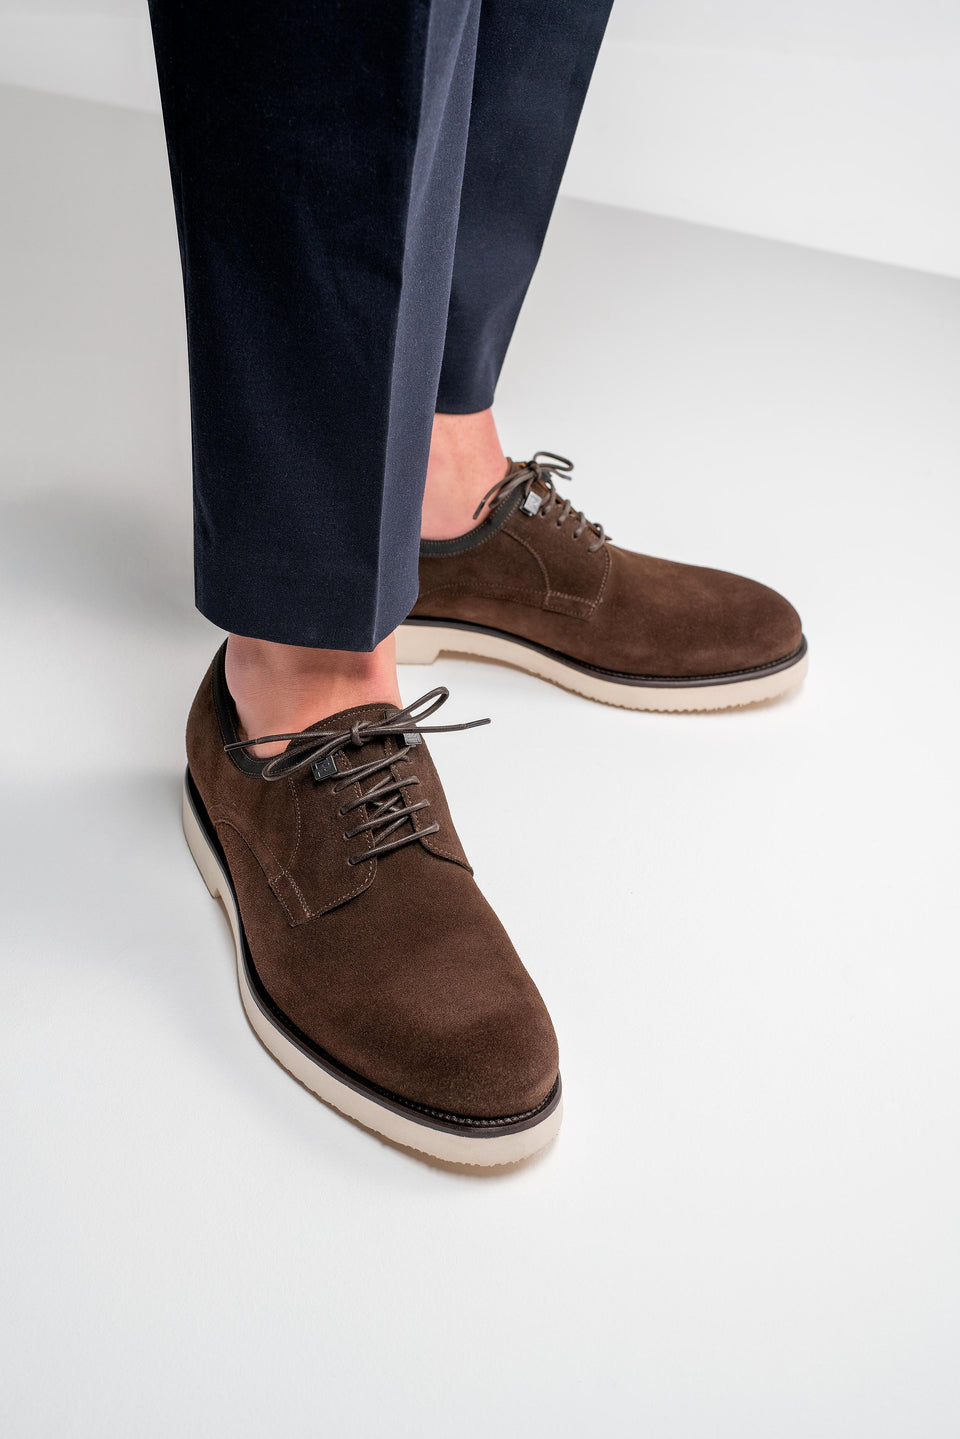 001 - Derby in Brown Suede